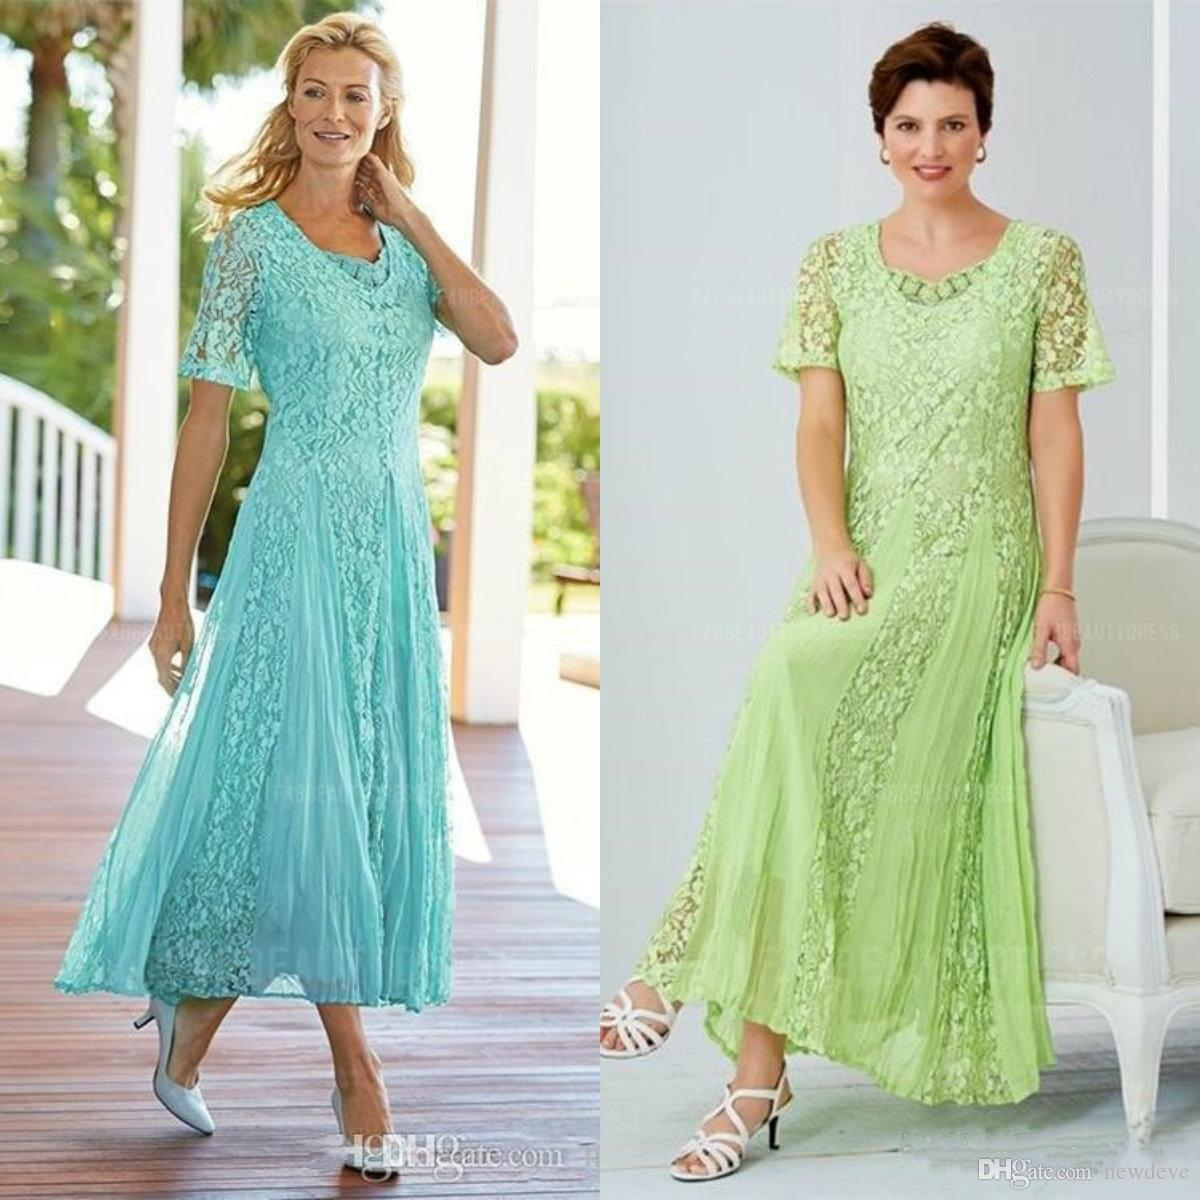 c715bec5a7ad Elegant Tea Length Lace Mother Of The Bride Dresses Scoop Neck Wedding  Guest Dress With Sleeves A Line Plus Size Formal Gowns Jessica Howard Mother  Of The ...